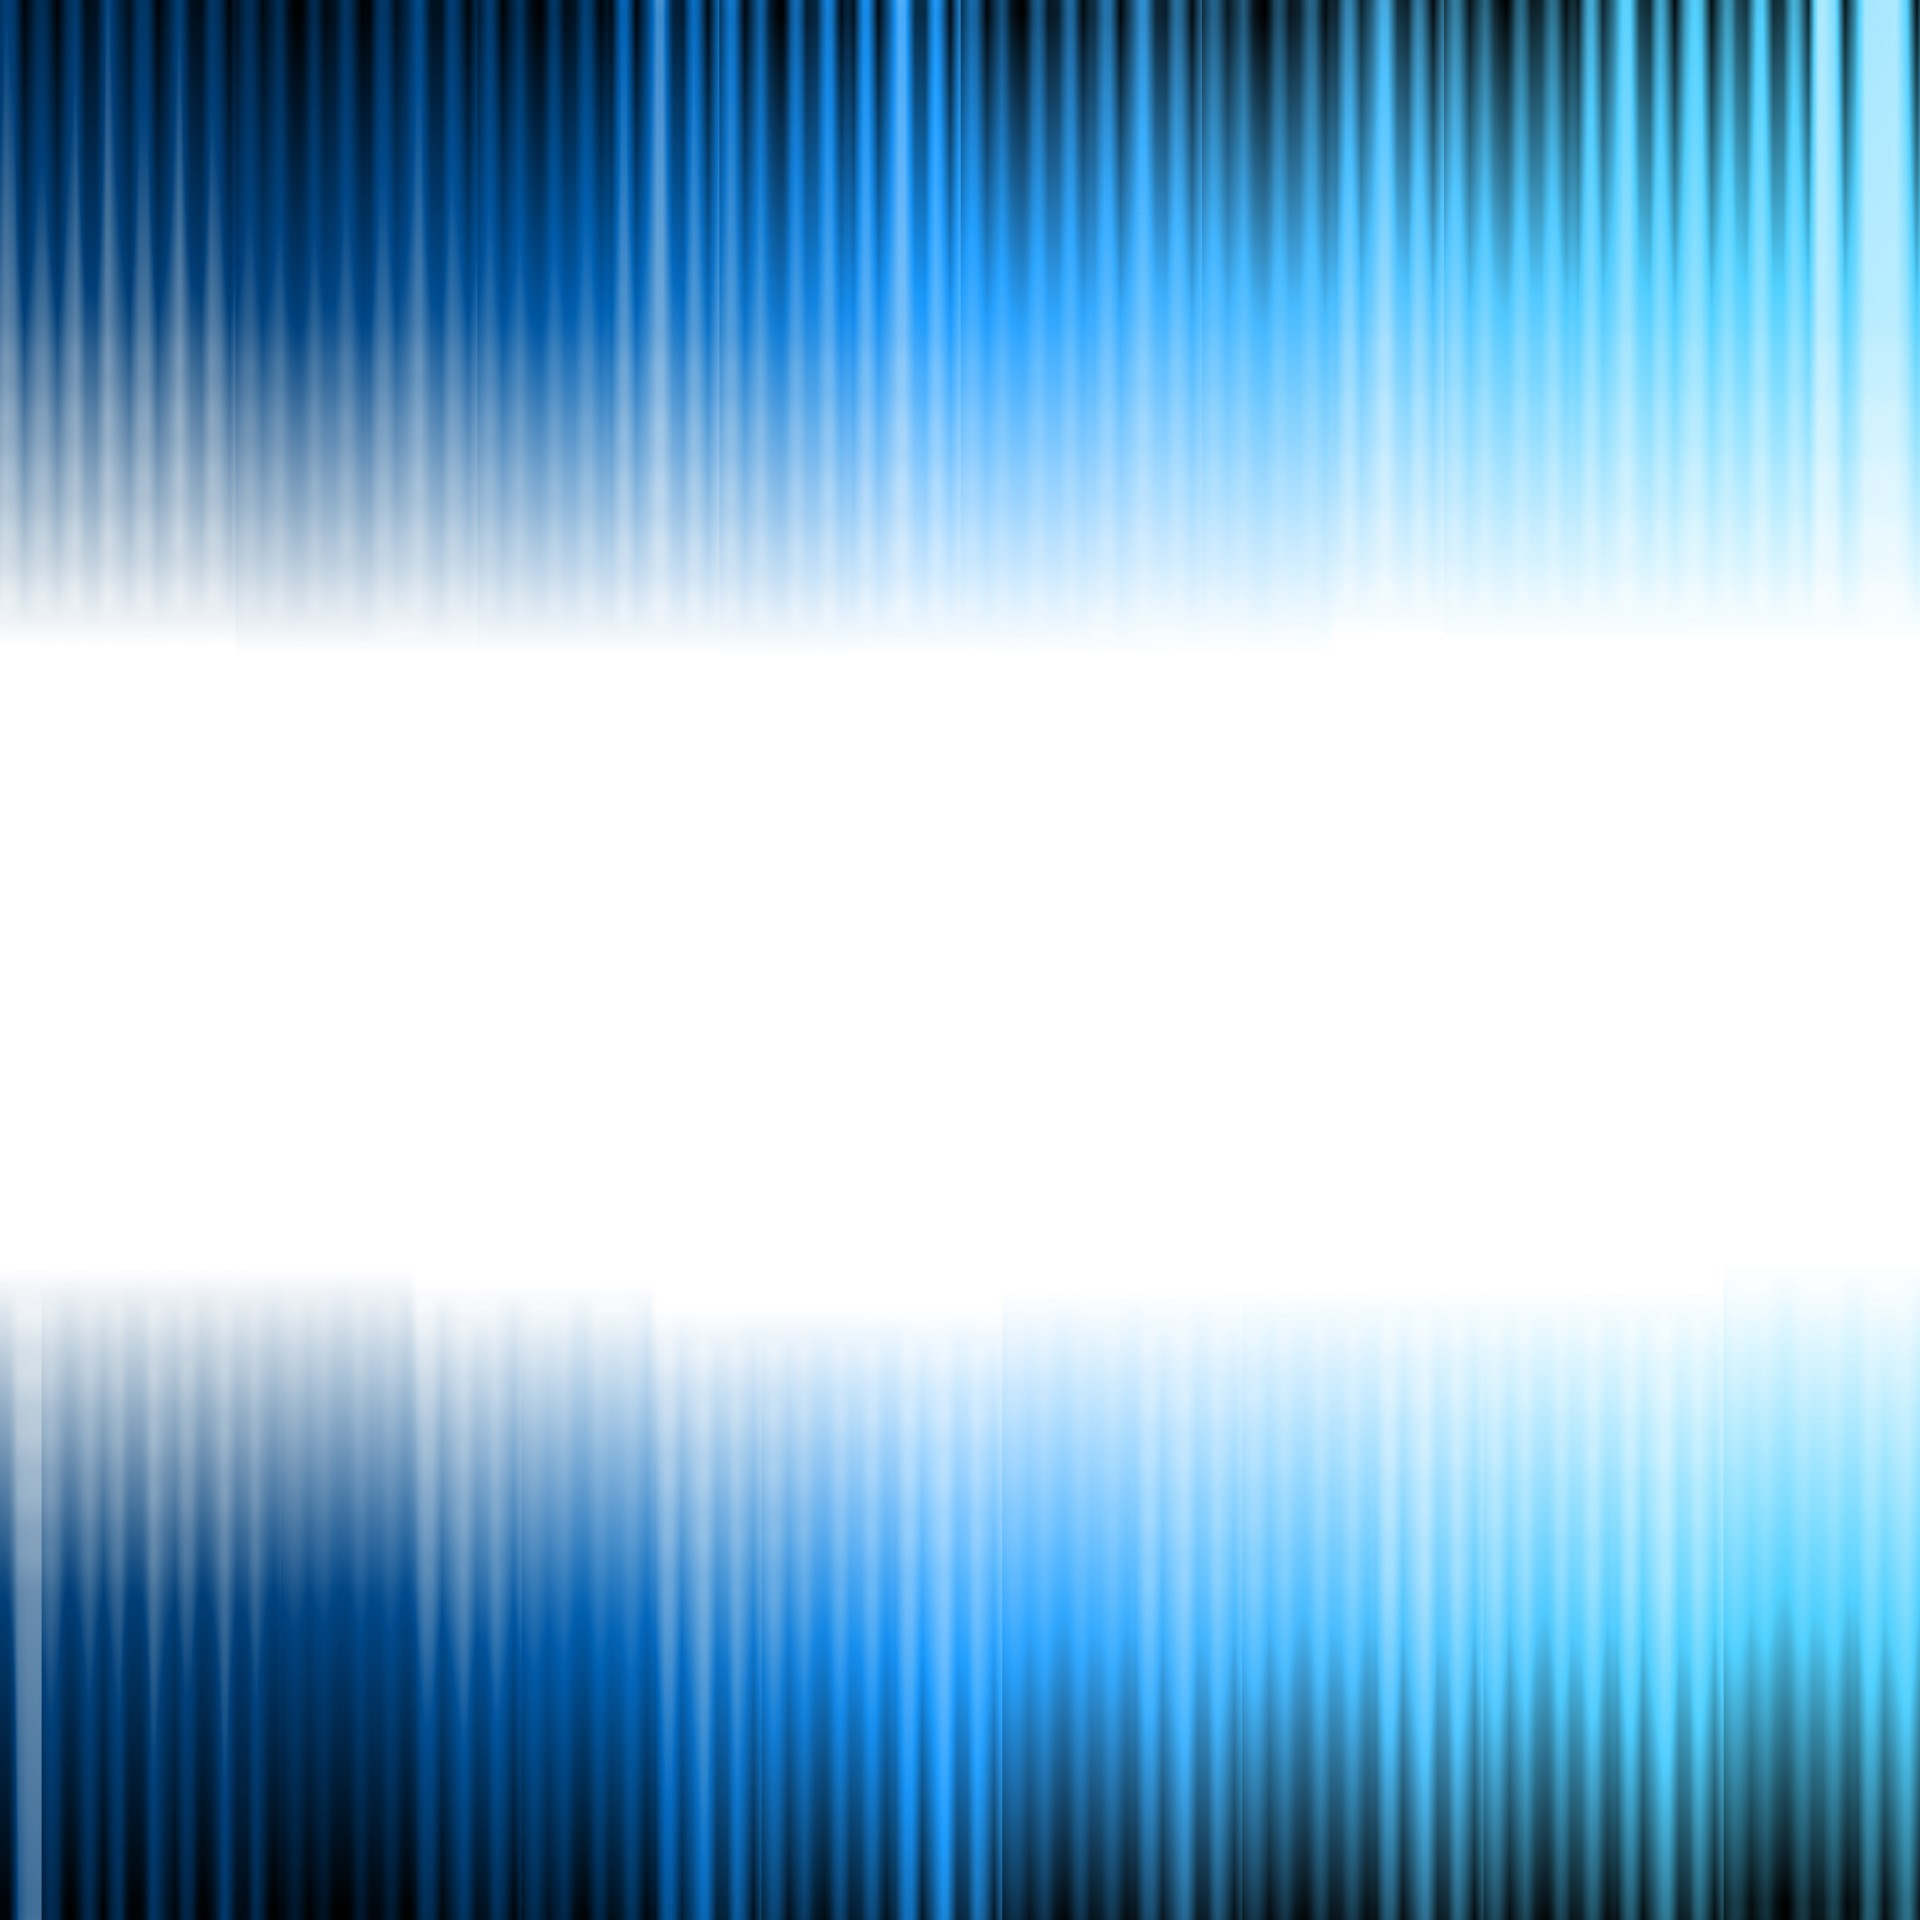 Iphone Moving Wallpaper: Stripe Background ·① Download Free Cool Wallpapers For